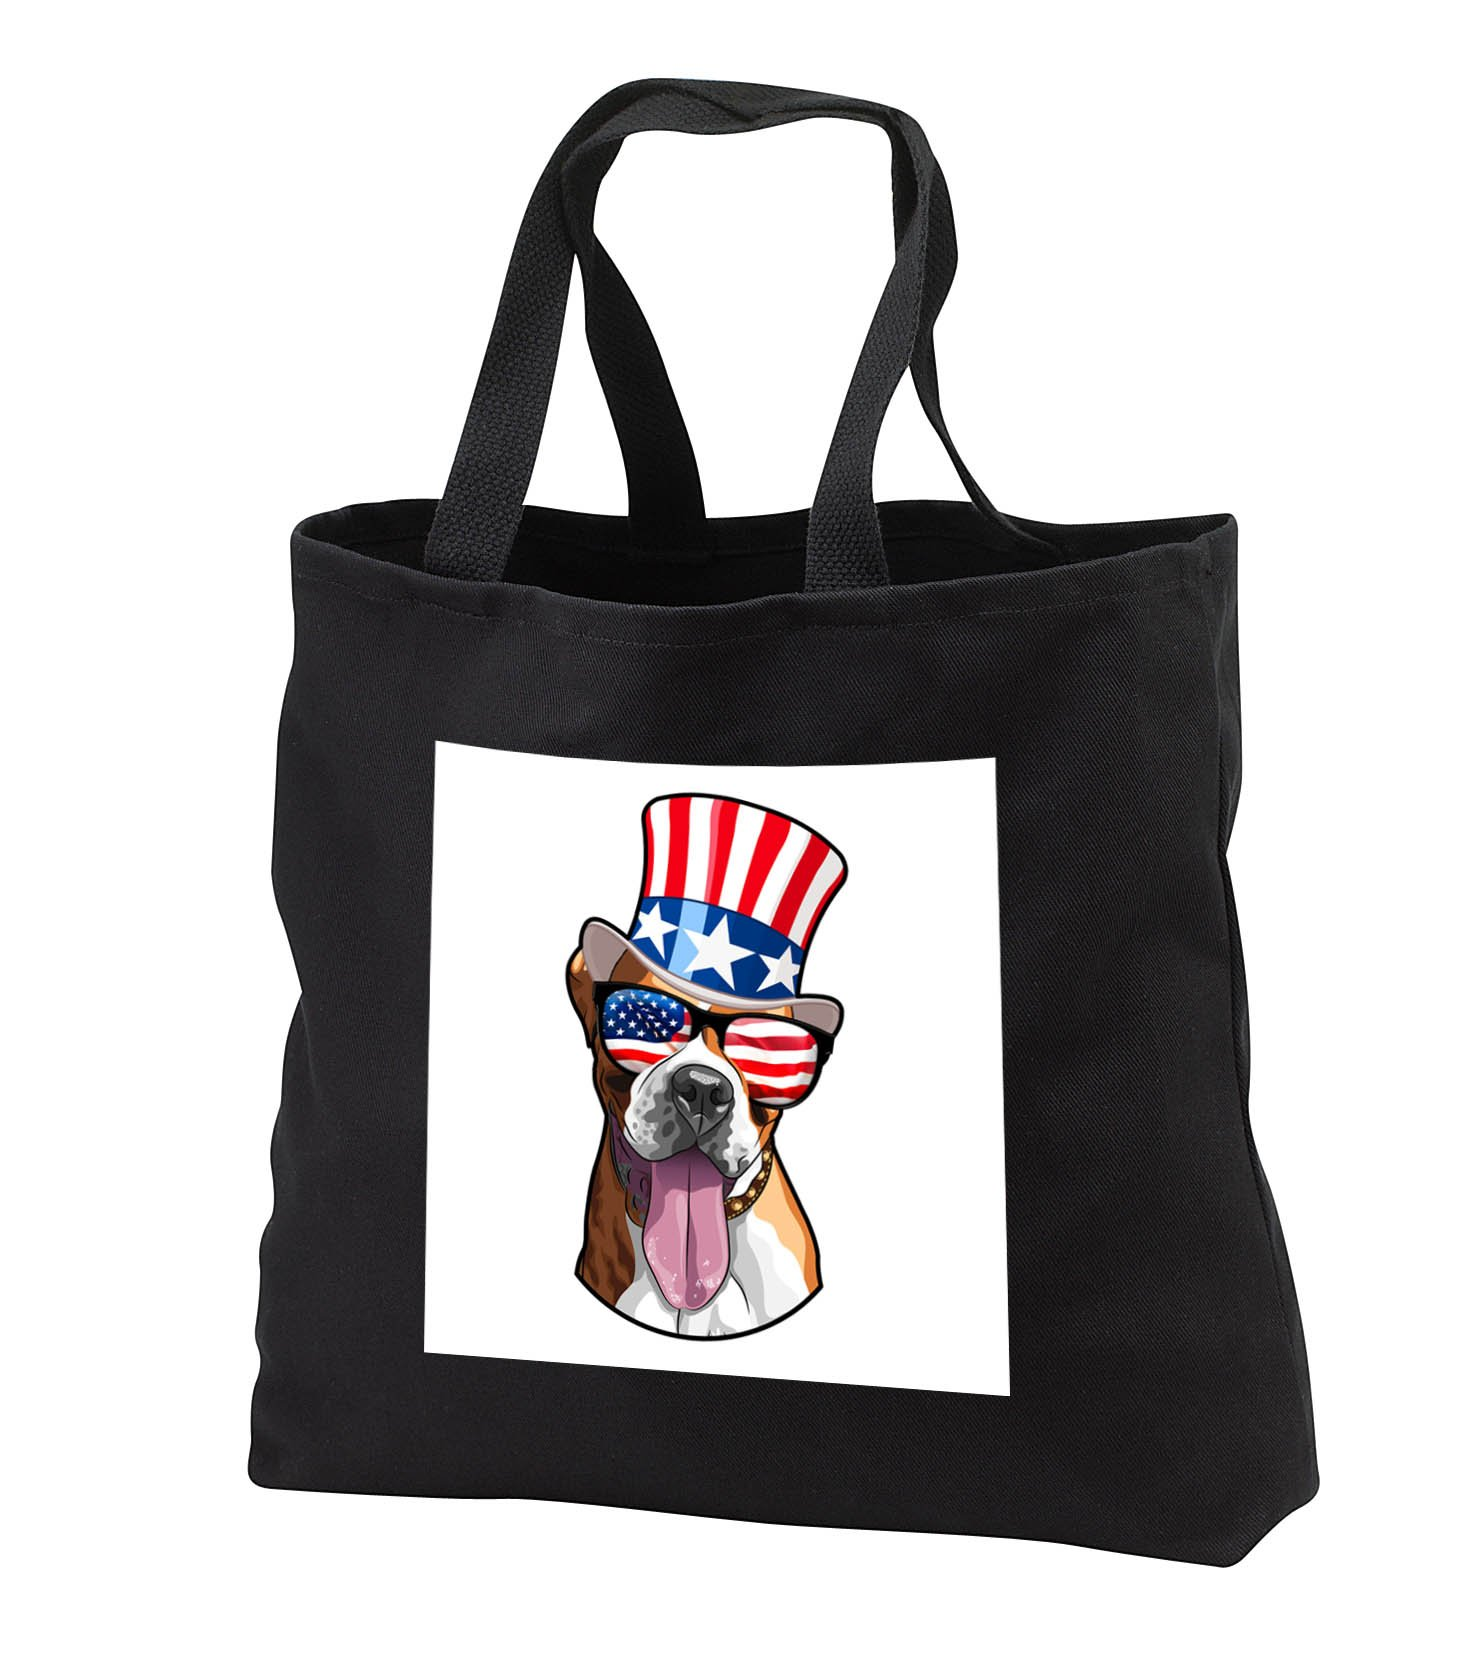 Patriotic American Dogs - Boxer Dog With American Flag Sunglasses and Top hat - Tote Bags - Black Tote Bag 14w x 14h x 3d (tb_282710_1)